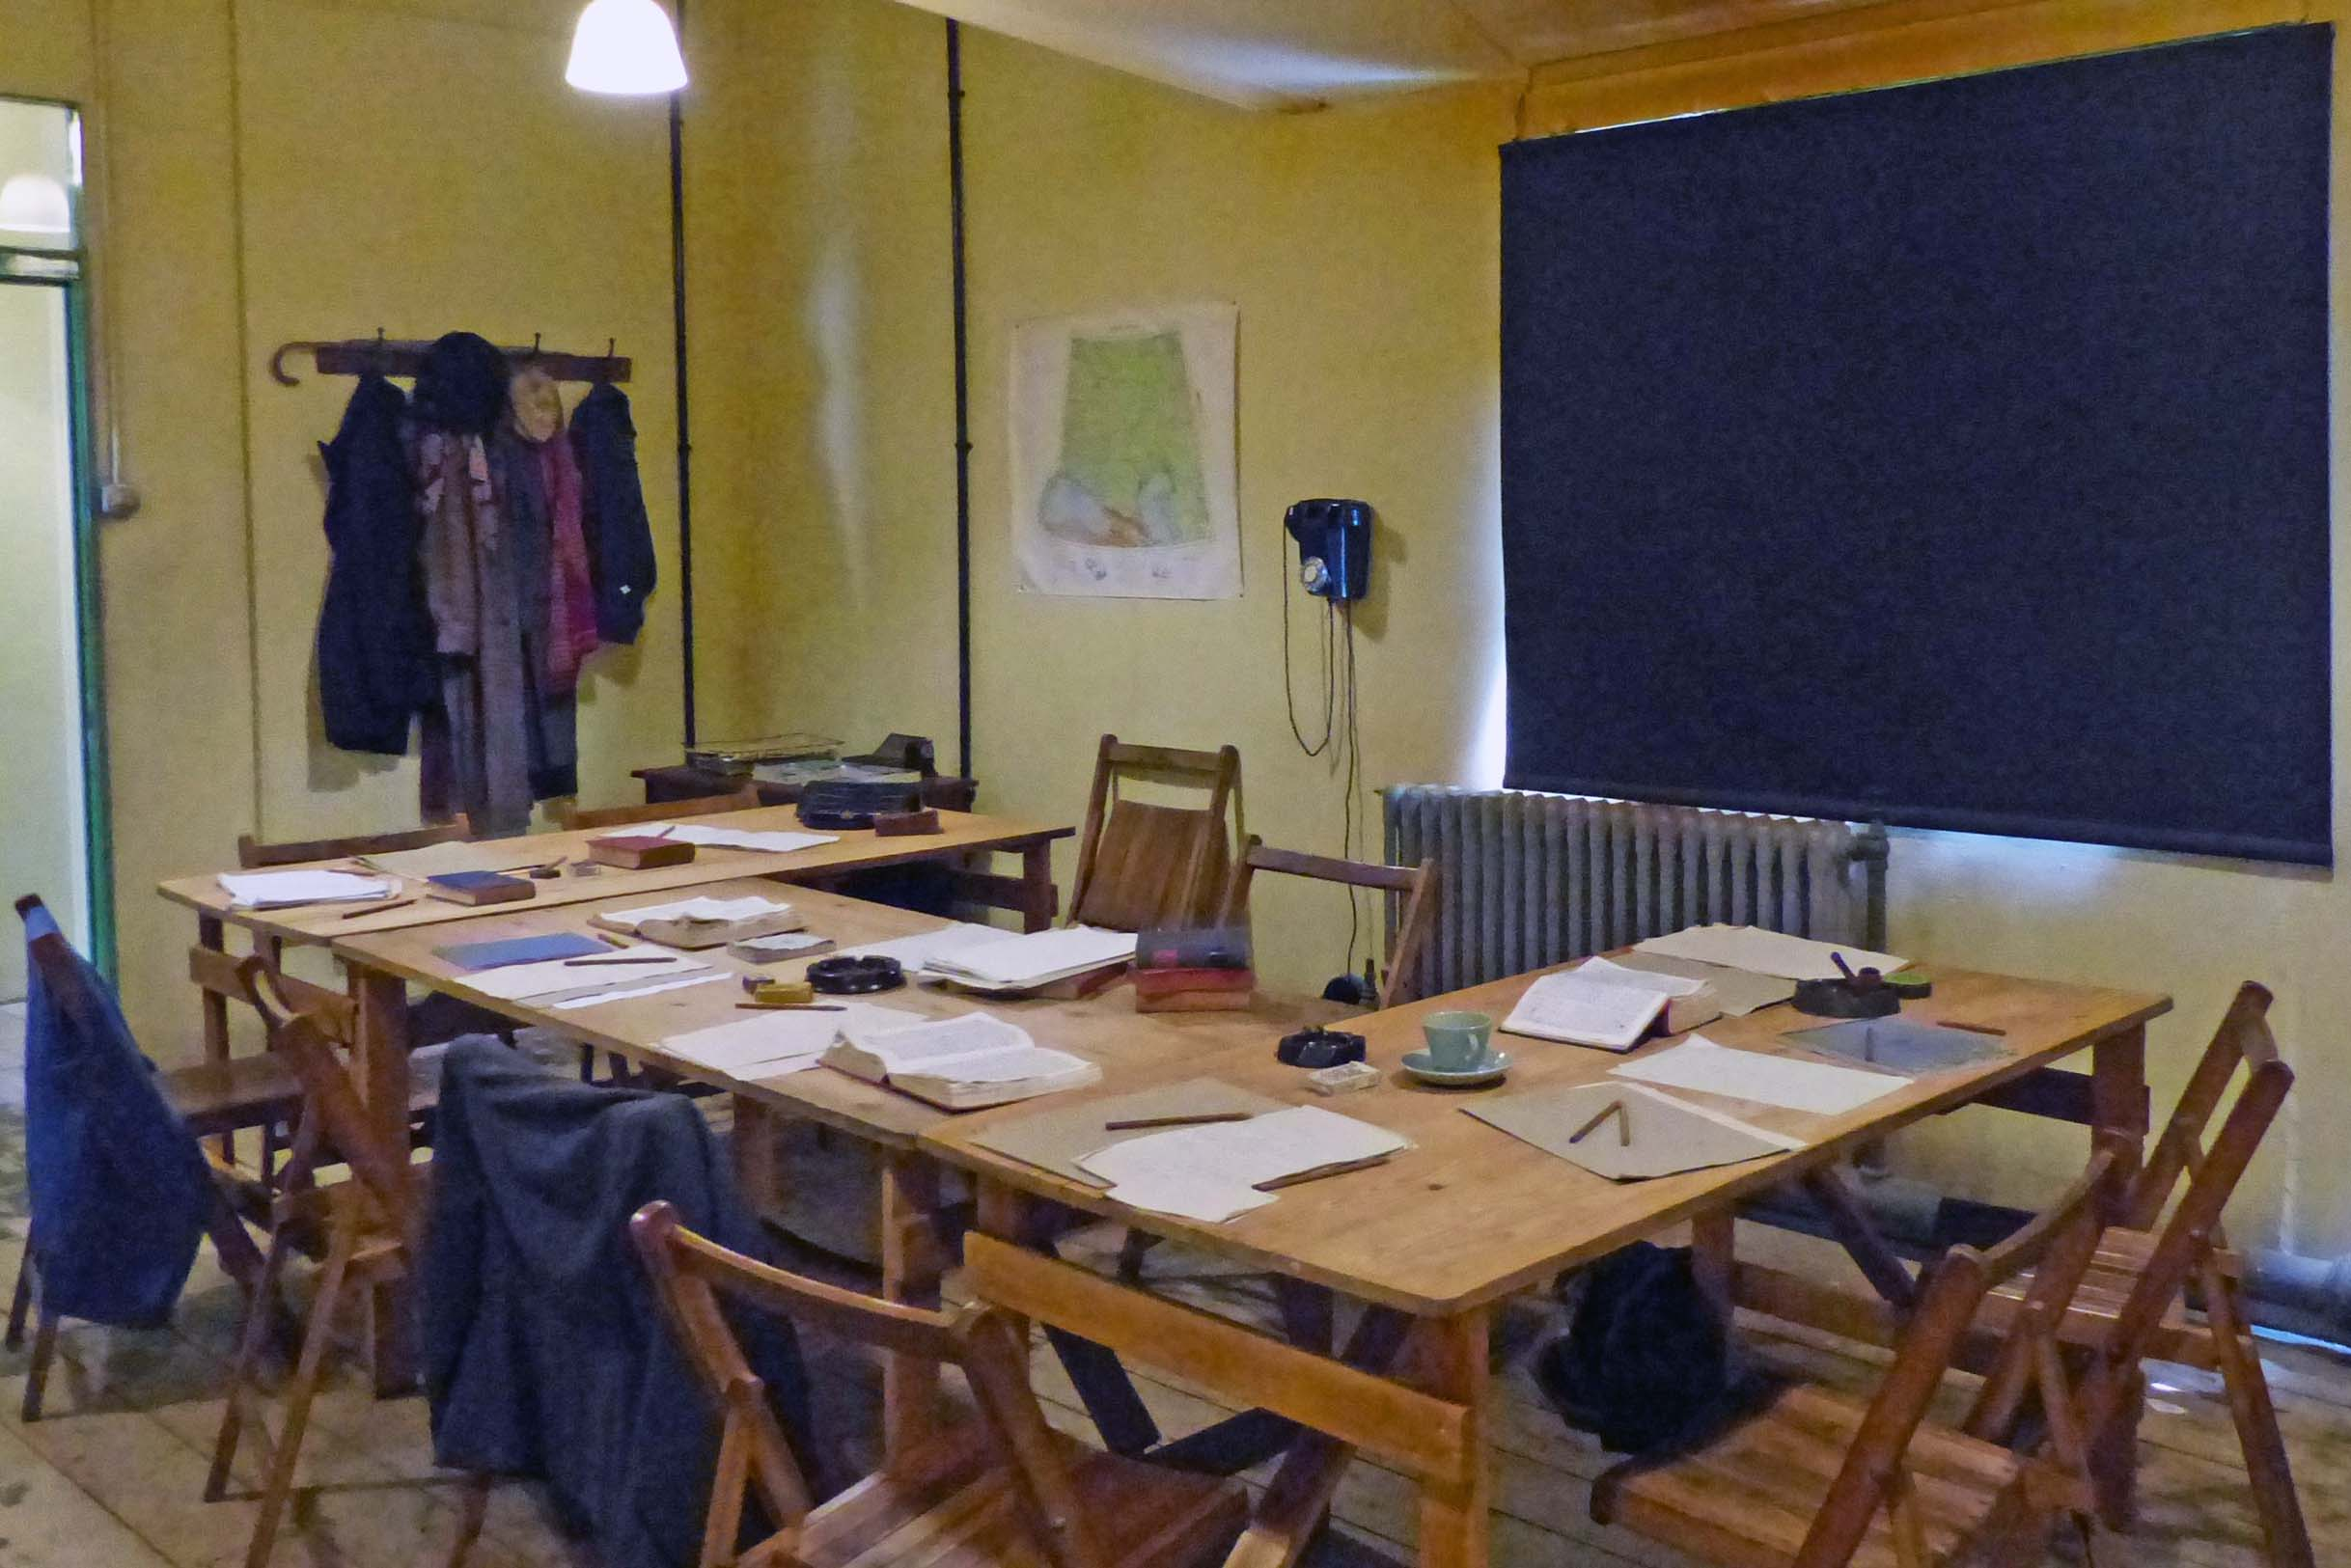 Room with wooden tables and chairs and blackout blind